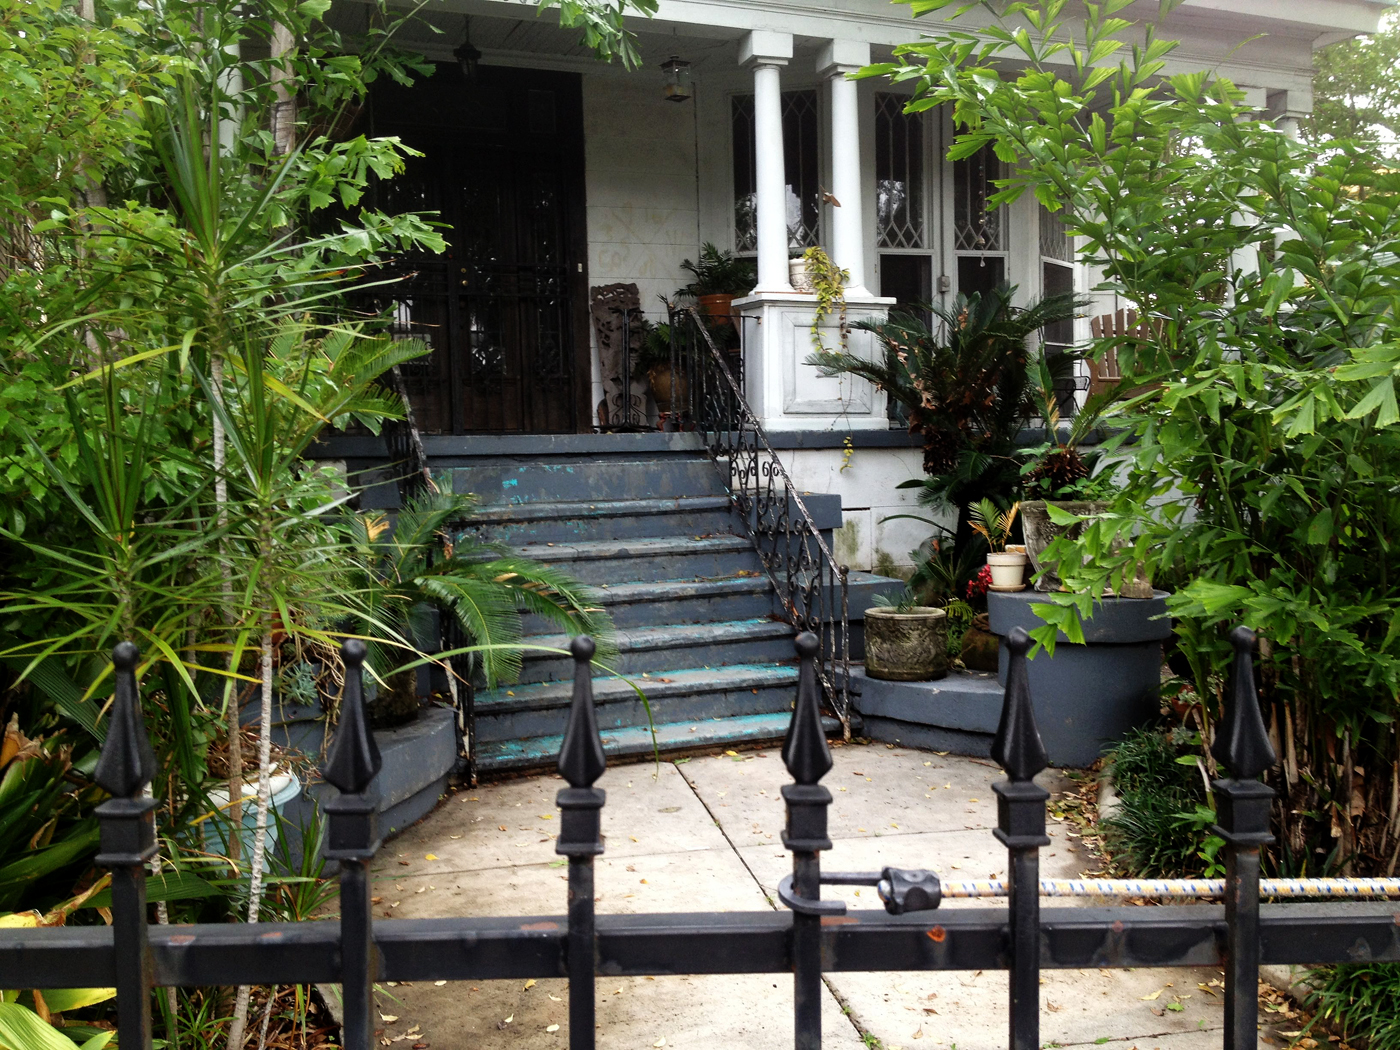 A Fine And Private Place; The Little Courtyard Gardens Of New Orleans  Entice Discreetly From